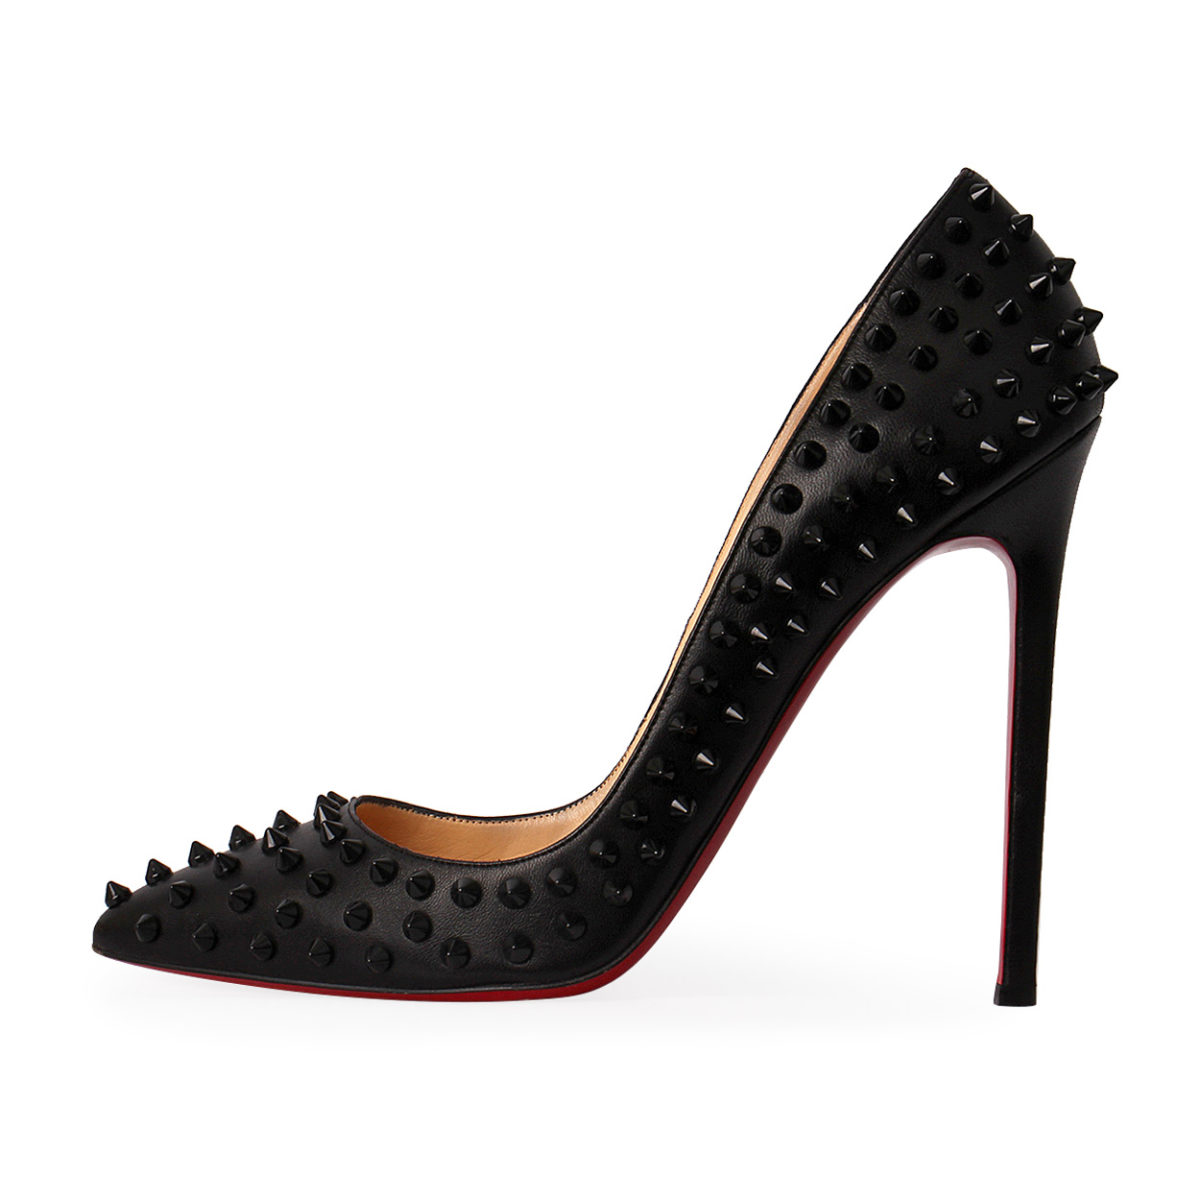 696c20070549 CHRISTIAN LOUBOUTIN Nappa Pigalle Spikes 120 Pumps Black - S 41 (7 ...